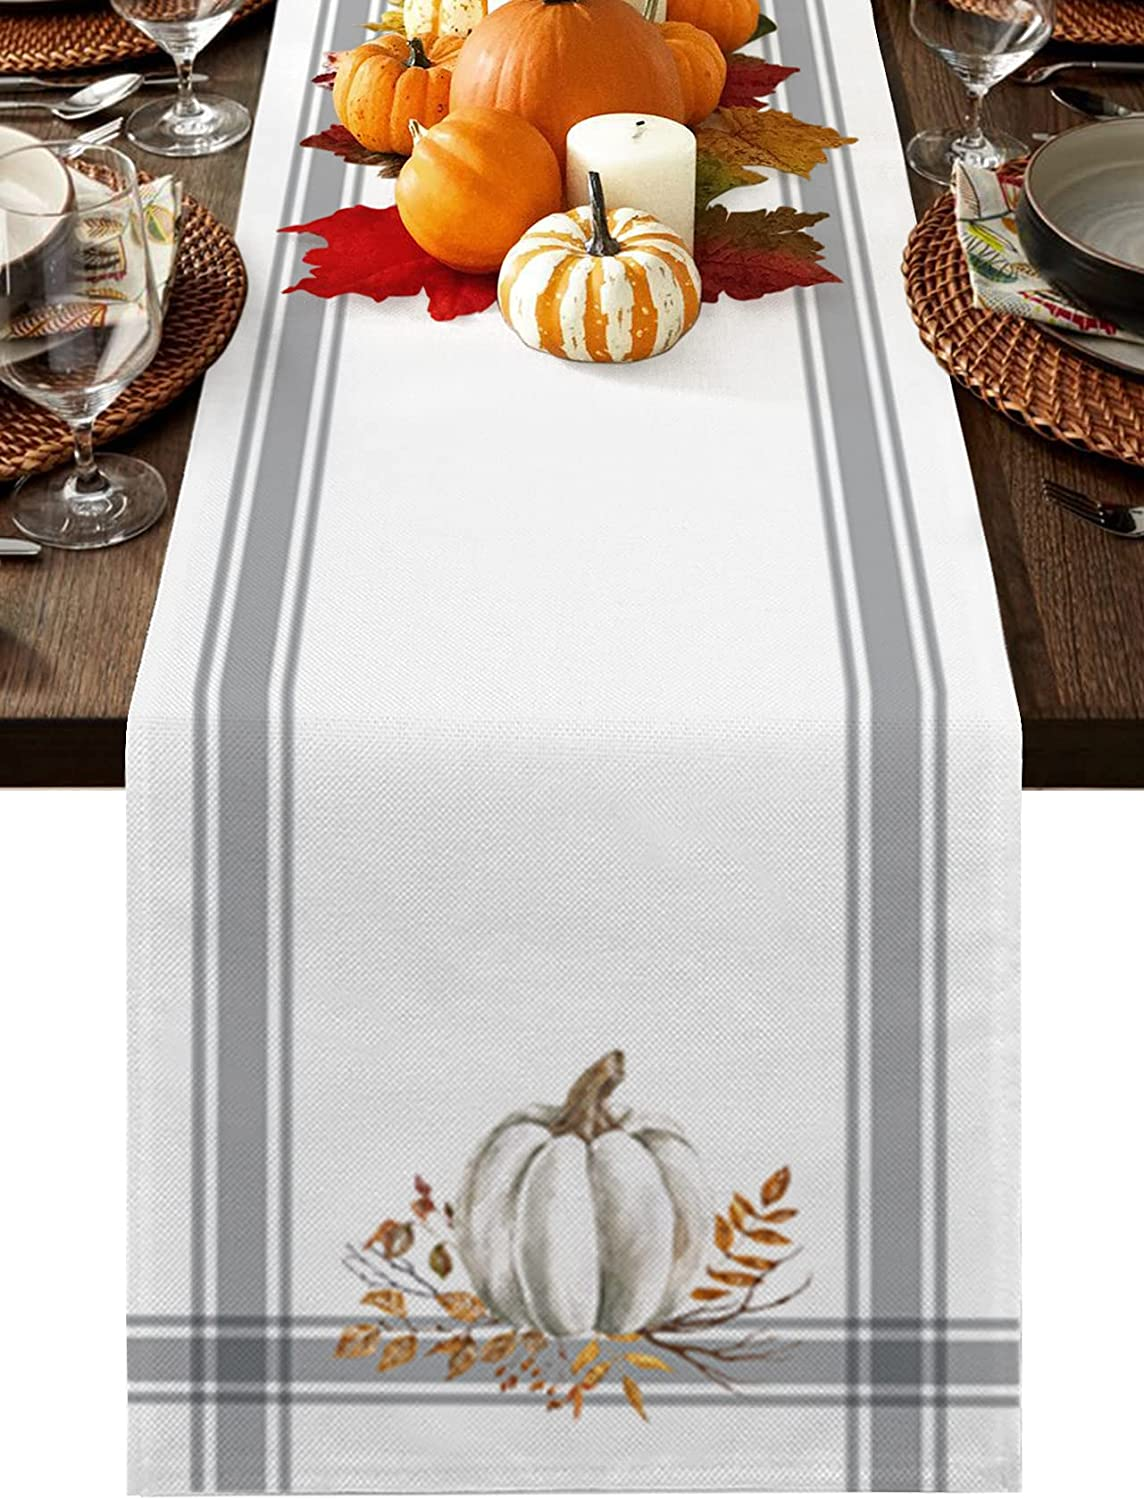 TweetyBed Thanksgiving Table Runners Dresser Scarves White Pumpkin Leaf Branch Non-Slip Runners for Dining Tables Gray Stripes Fall Autumn Dinner Runner Kitchen Parties Wedding Decor, 13